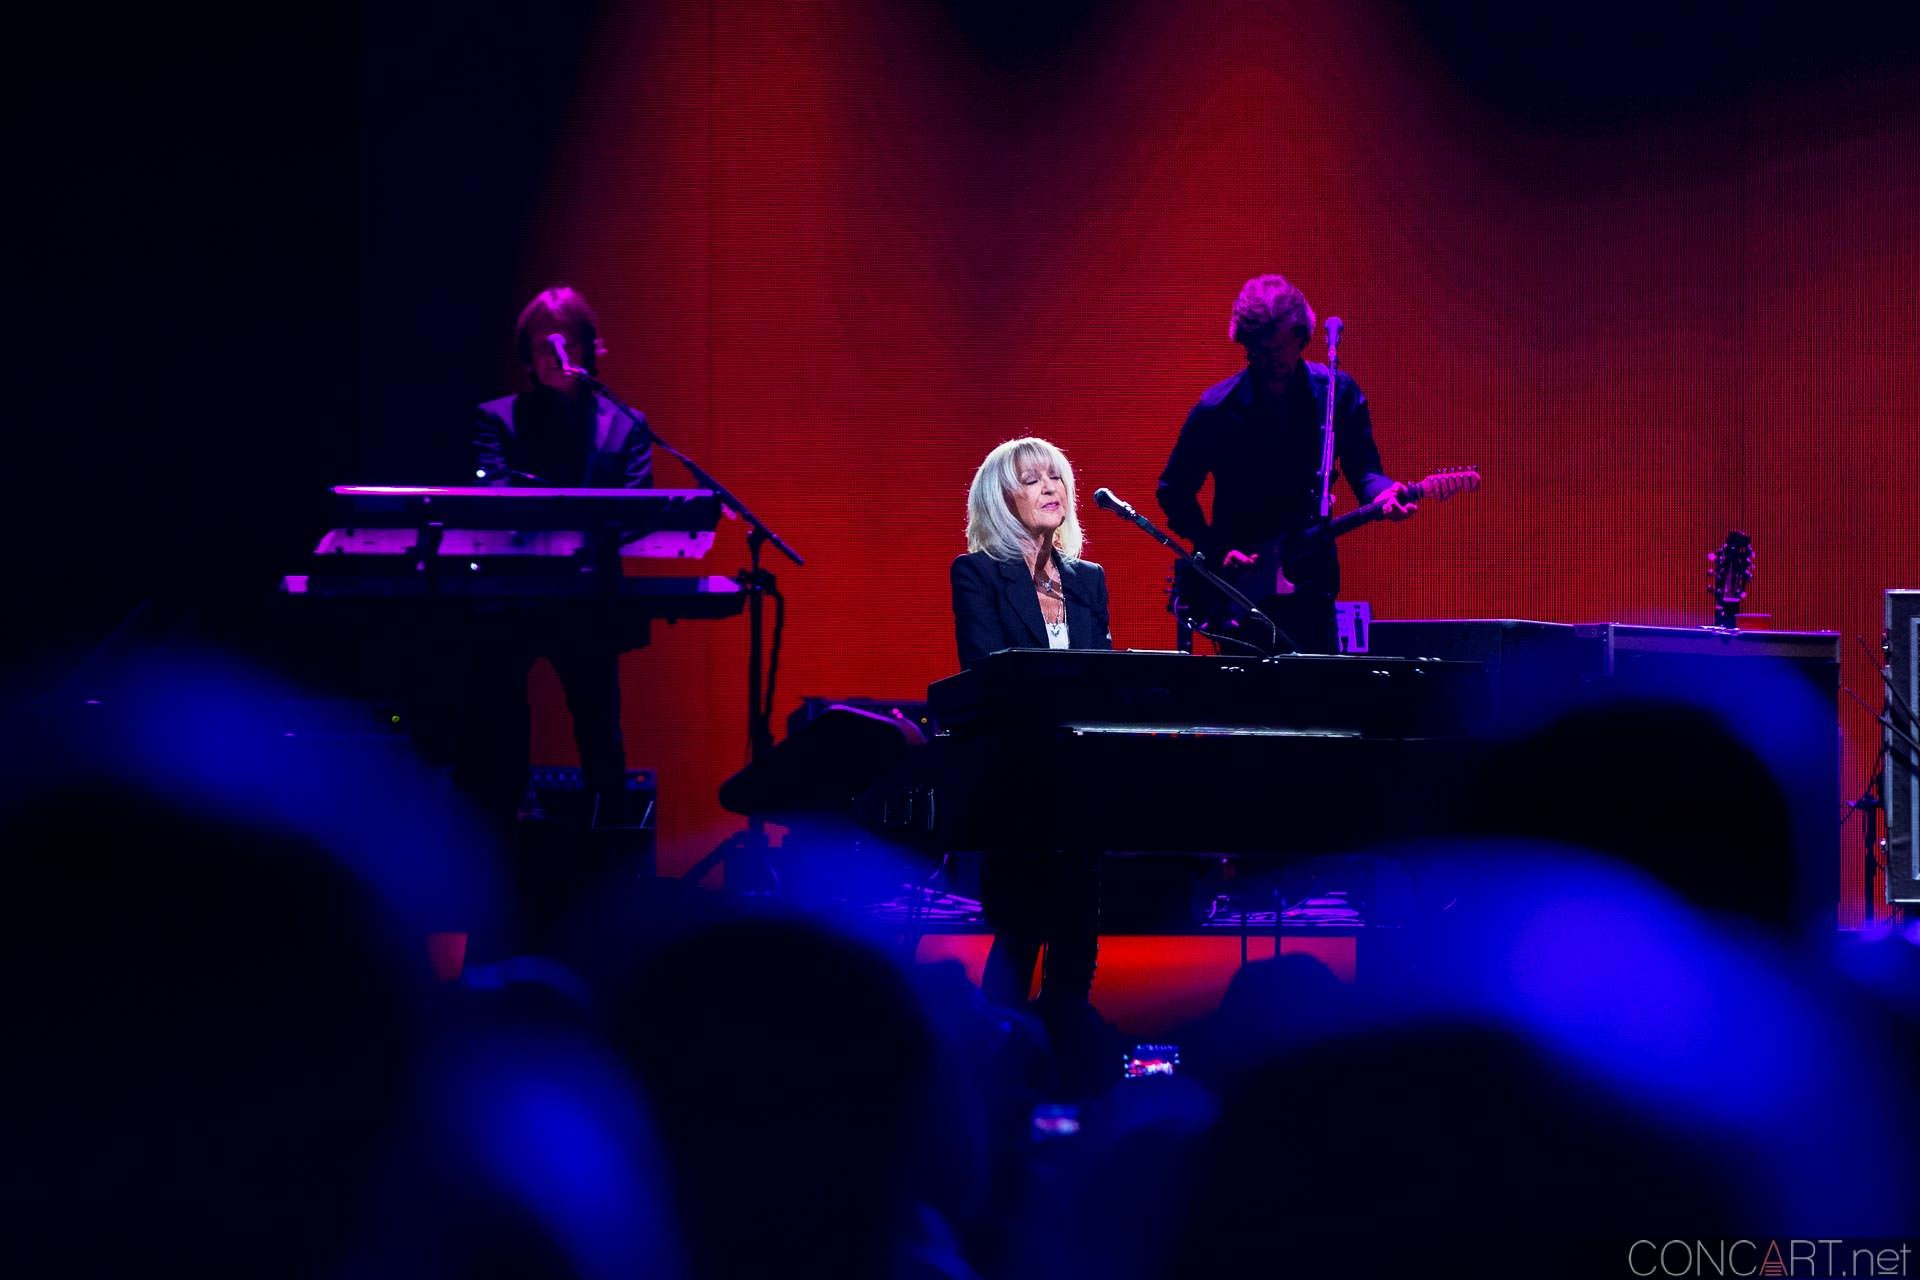 003-fleetwood-mac-live-indianapolis-bankers-life-fieldhouse-2014